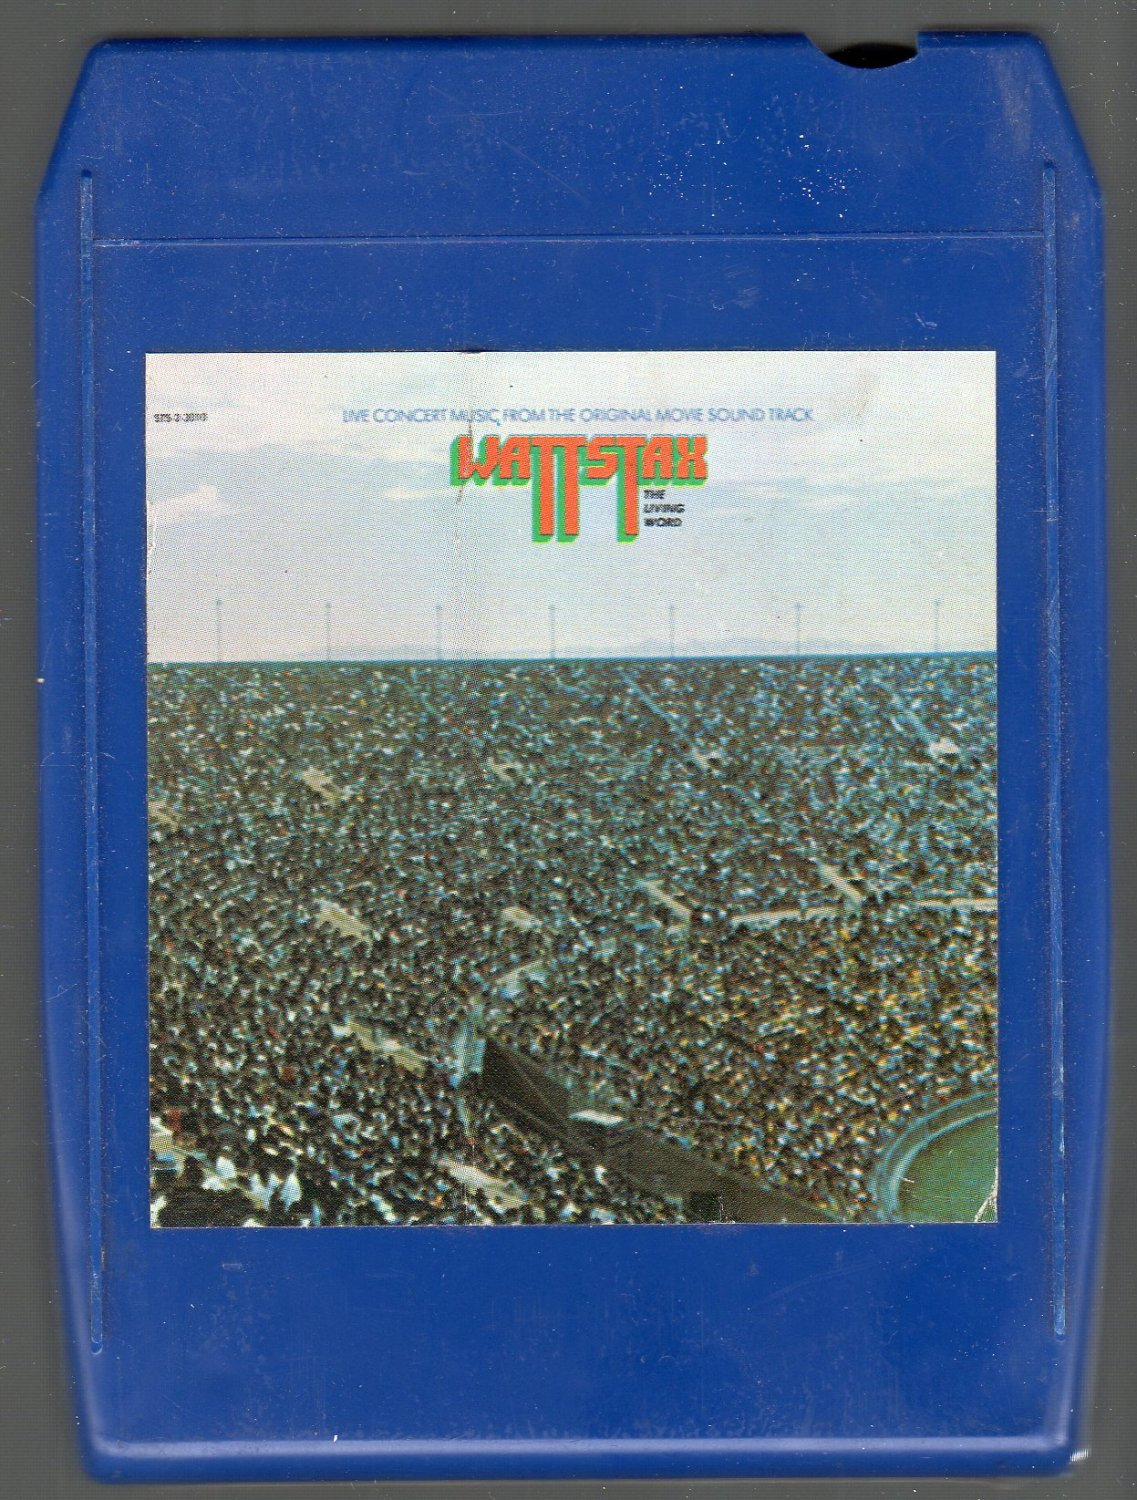 Wattstax - Original Movie Soundtrack Vol I Live Concert 8-track tape